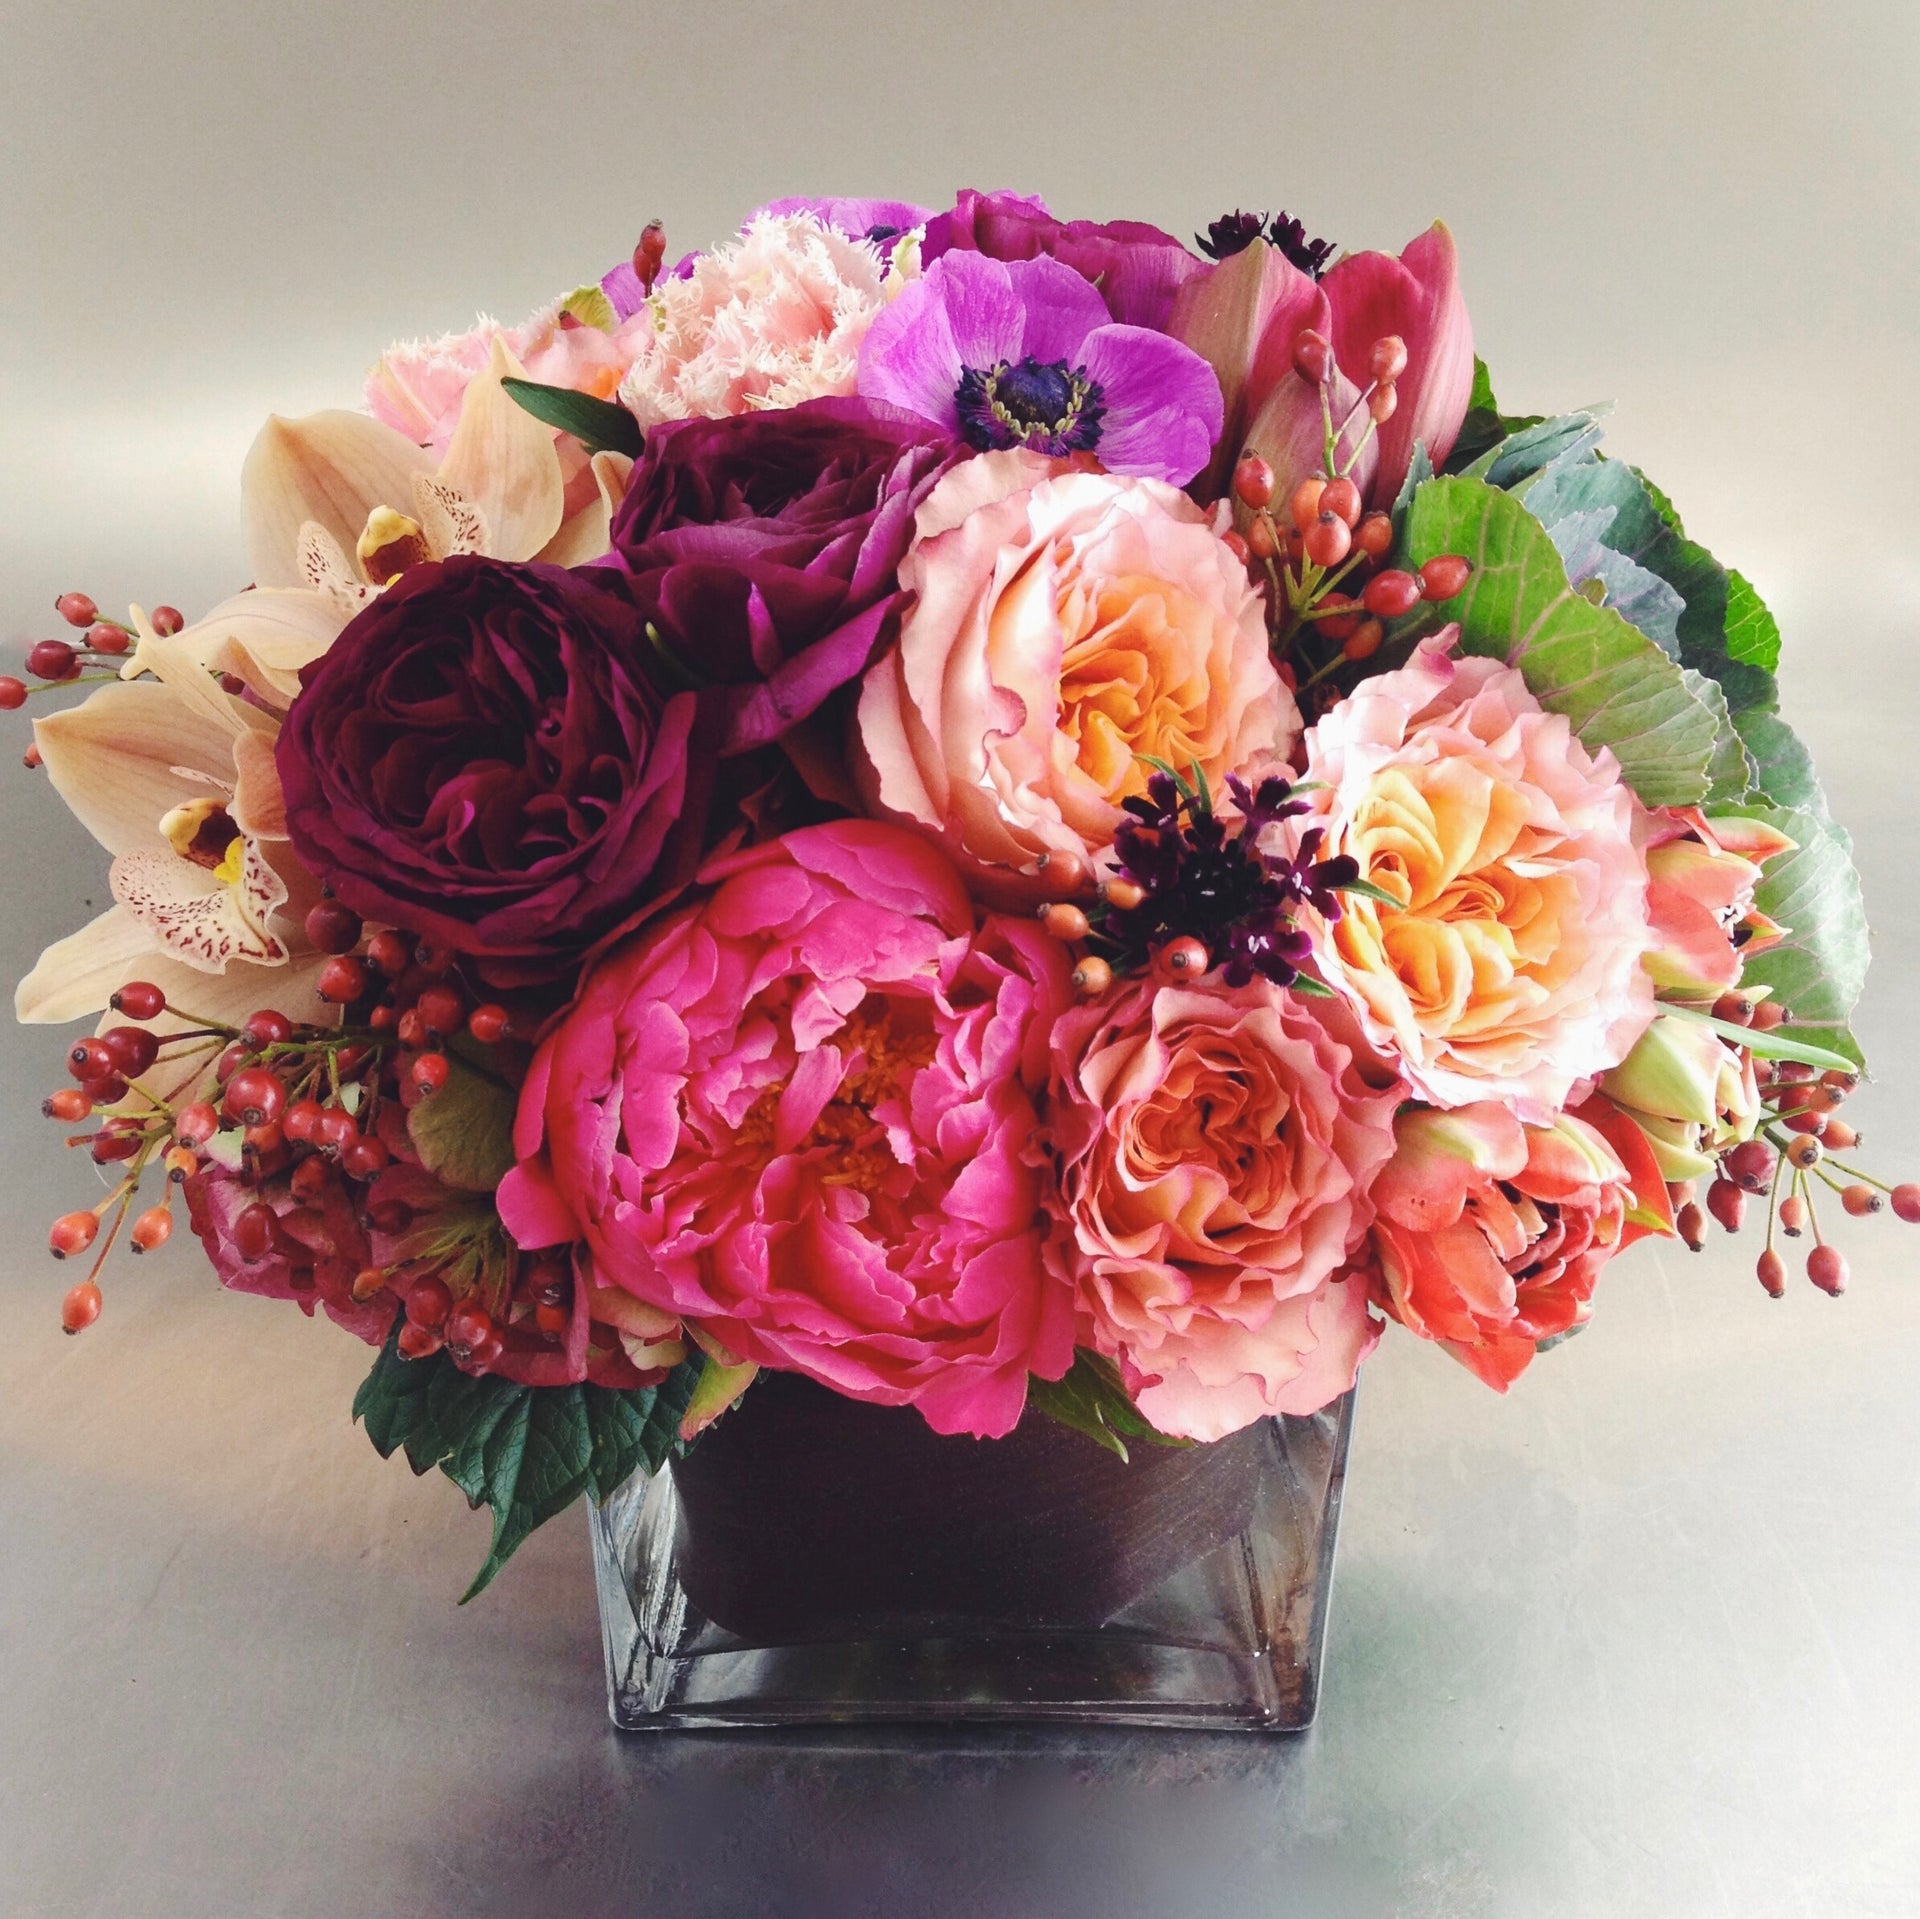 Fall arrangement using roses, kale, and berries available for delivery.